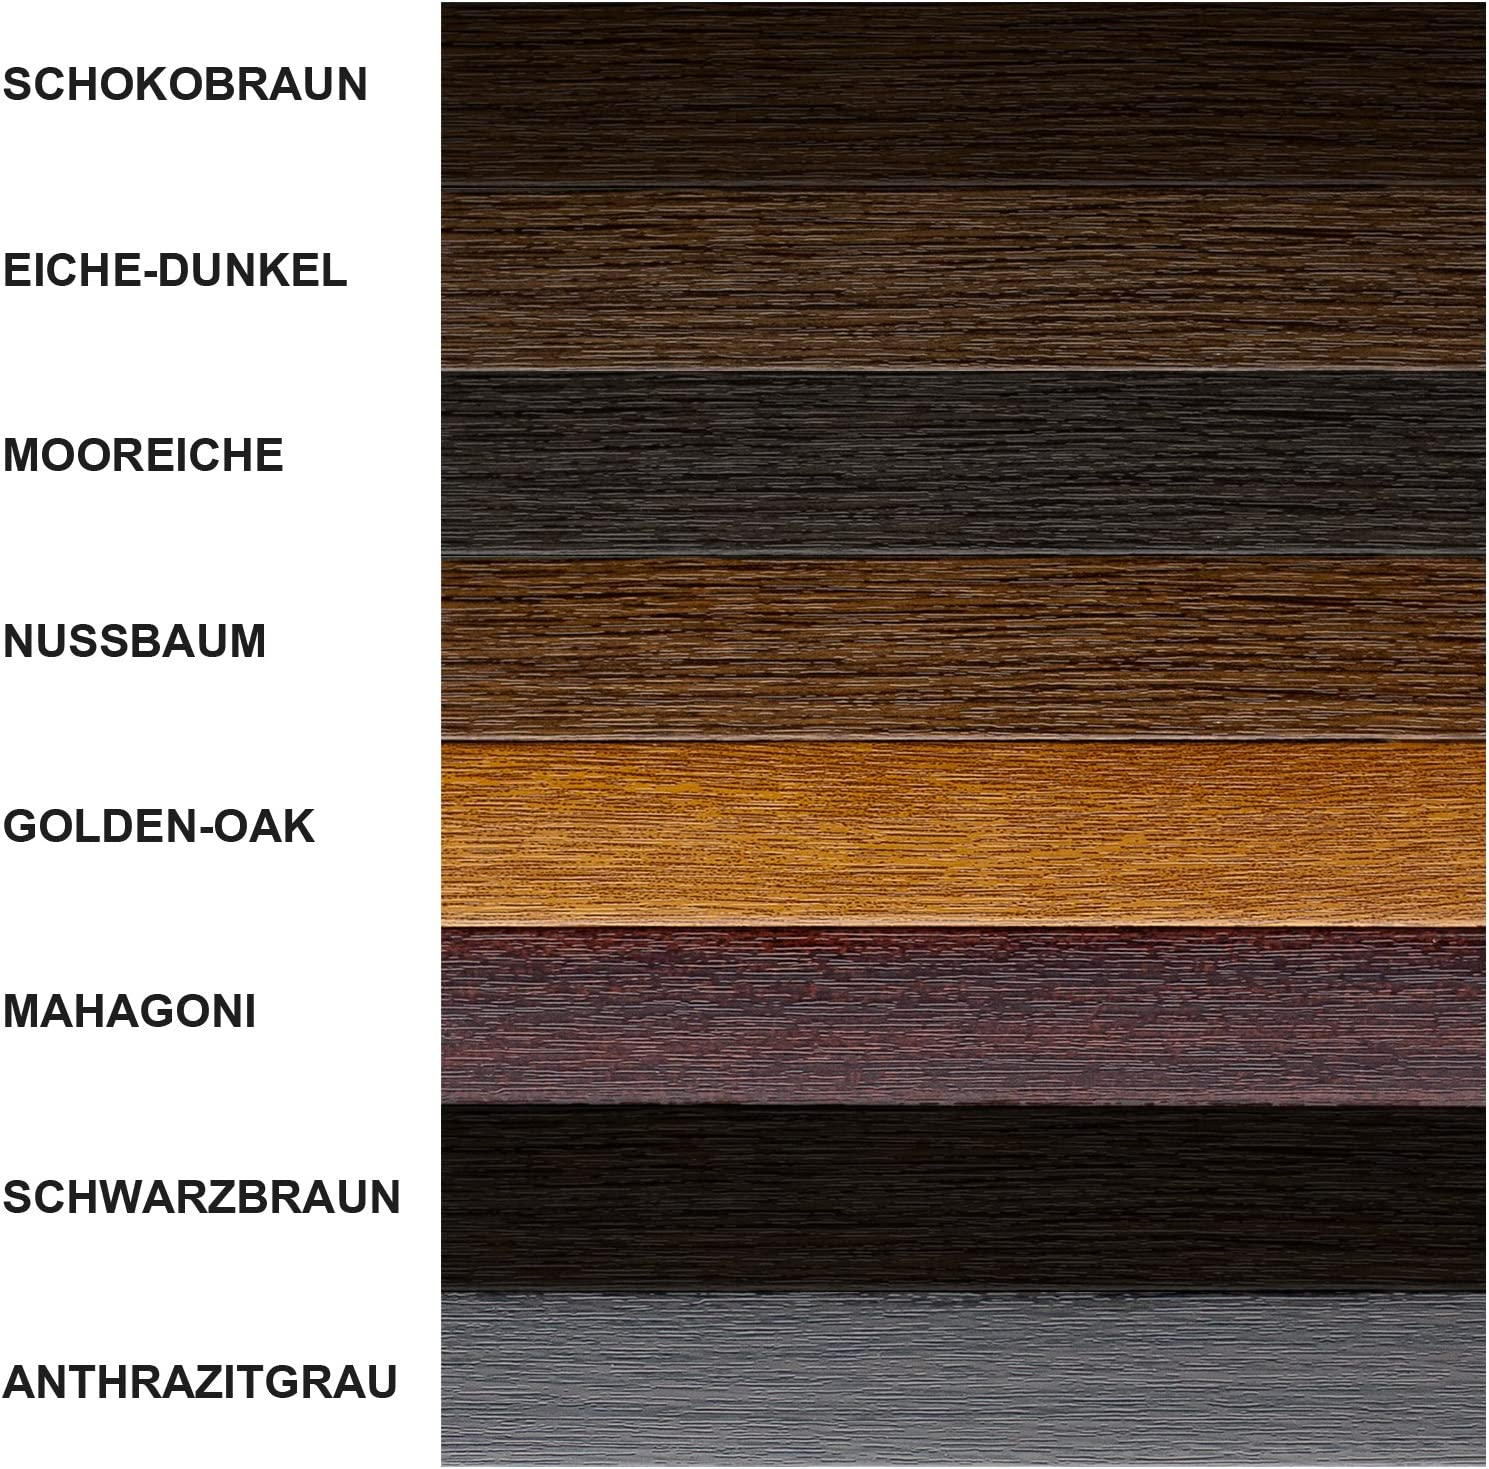 5 m Fensterleisten Flachleisten in grau dunkelbraun Fensterleiste Flachleiste Abdeckleiste 30mm H/öhe braun 1 m bis 50 m OHNE LIPPE anthrazit golden-oak 3,38/€ //m Made in Germany